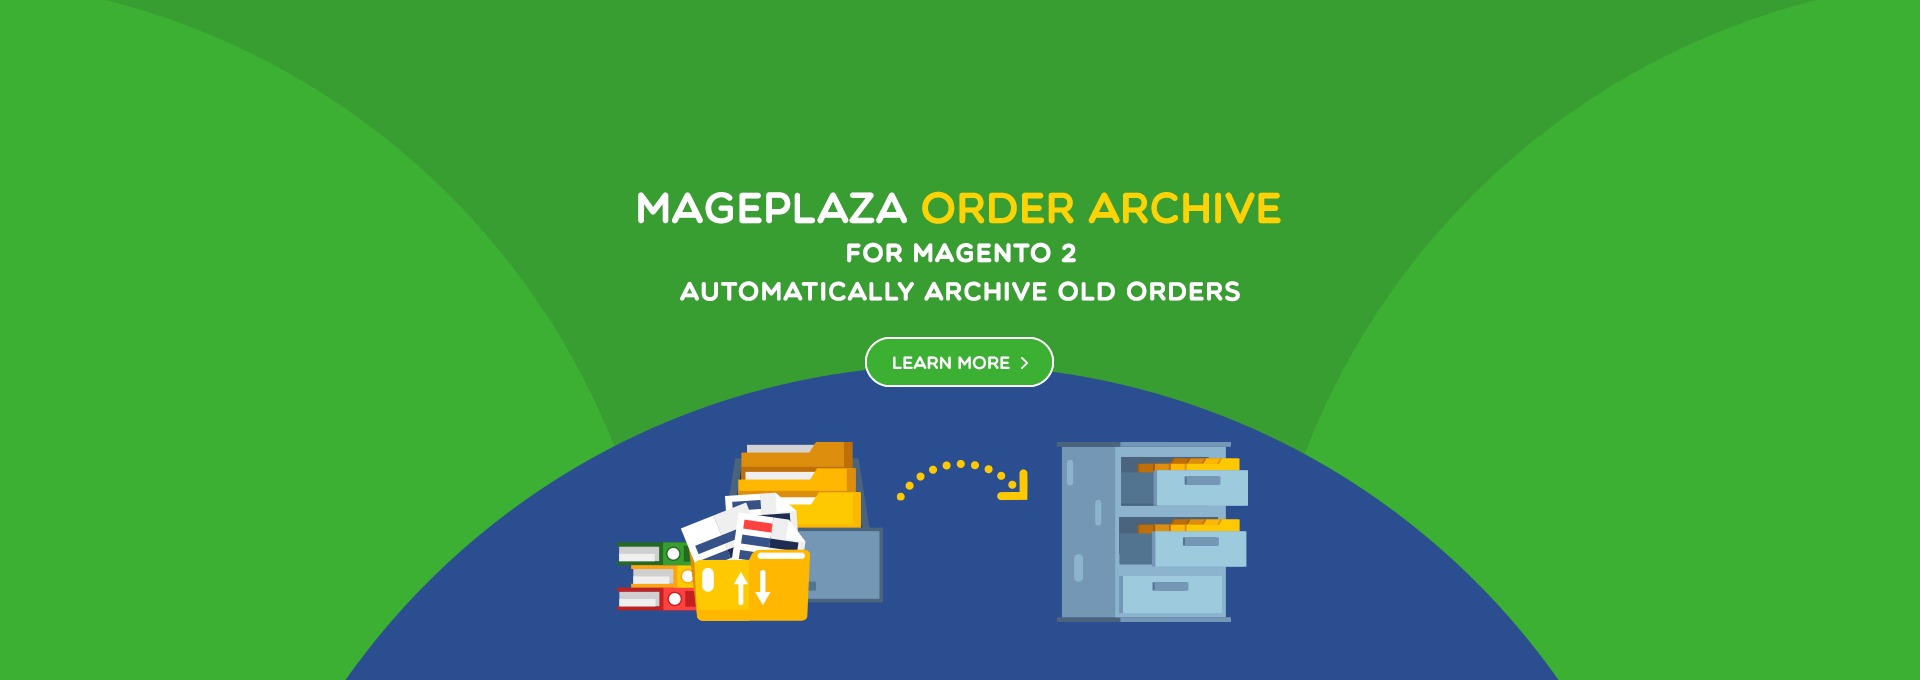 magento 2 order archive